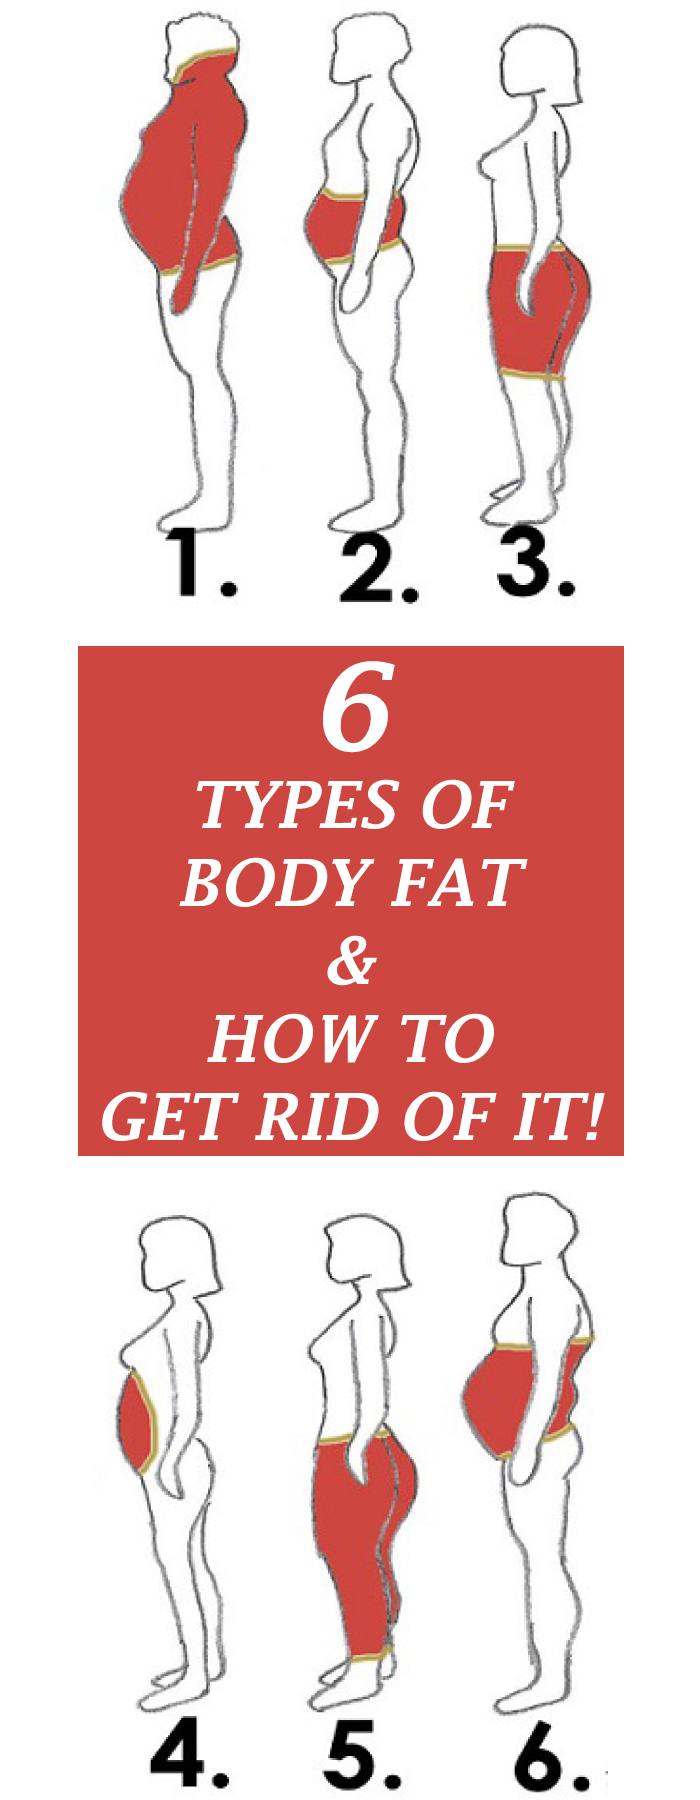 6 Types Of Body Fat And How To Get Rid Of It